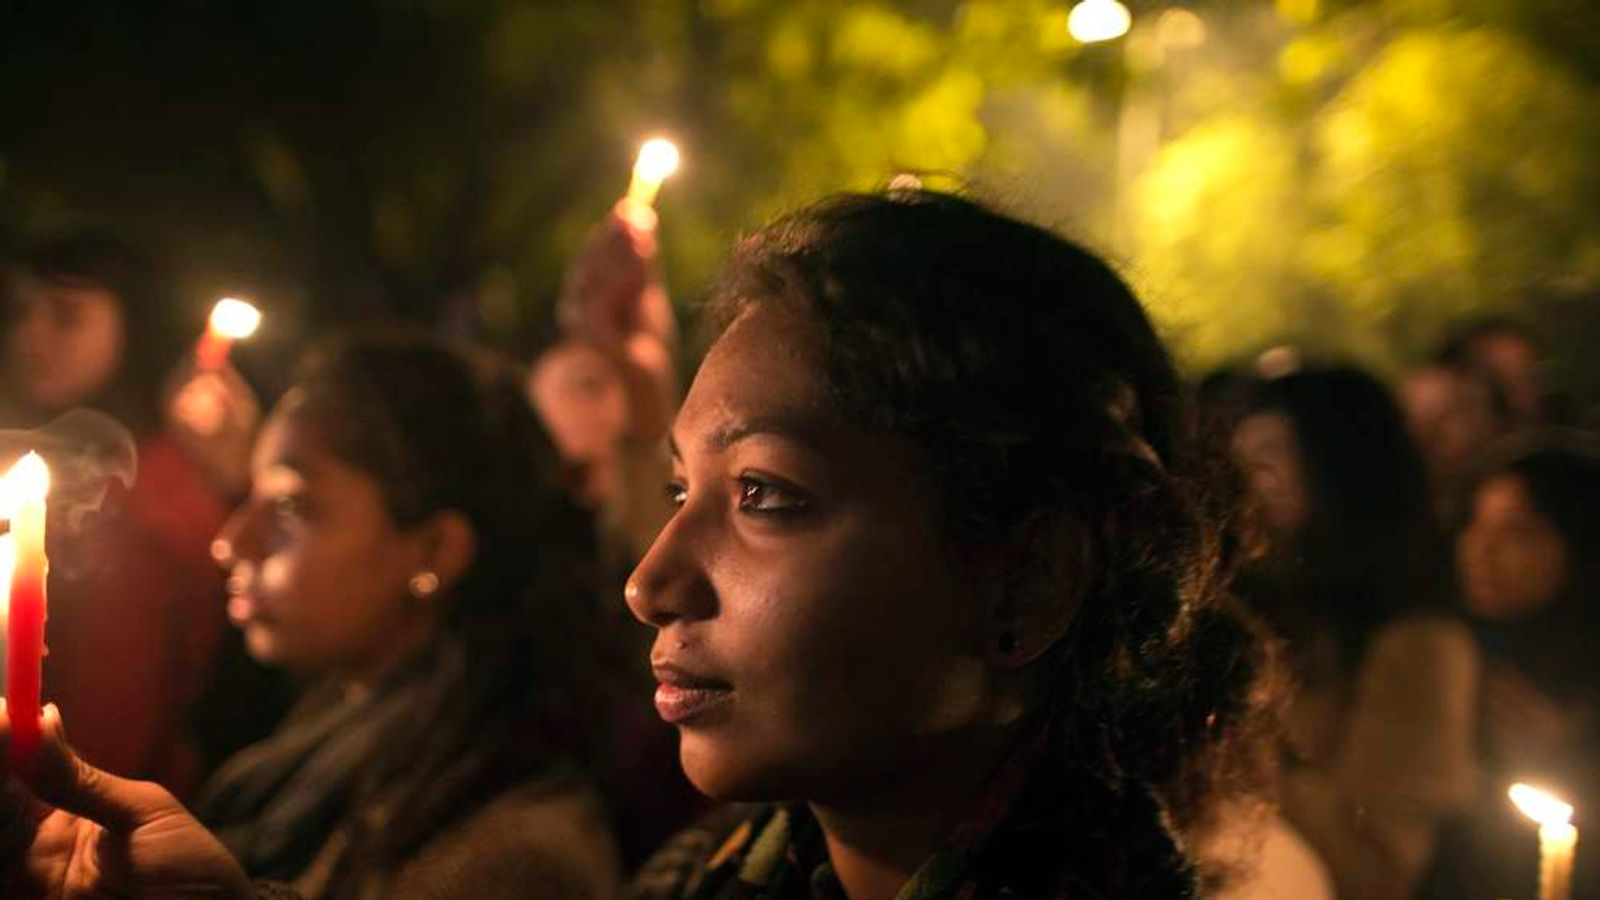 Demonstrators attend a candlelight vigil for a gang rape victim who was assaulted in New Delhi